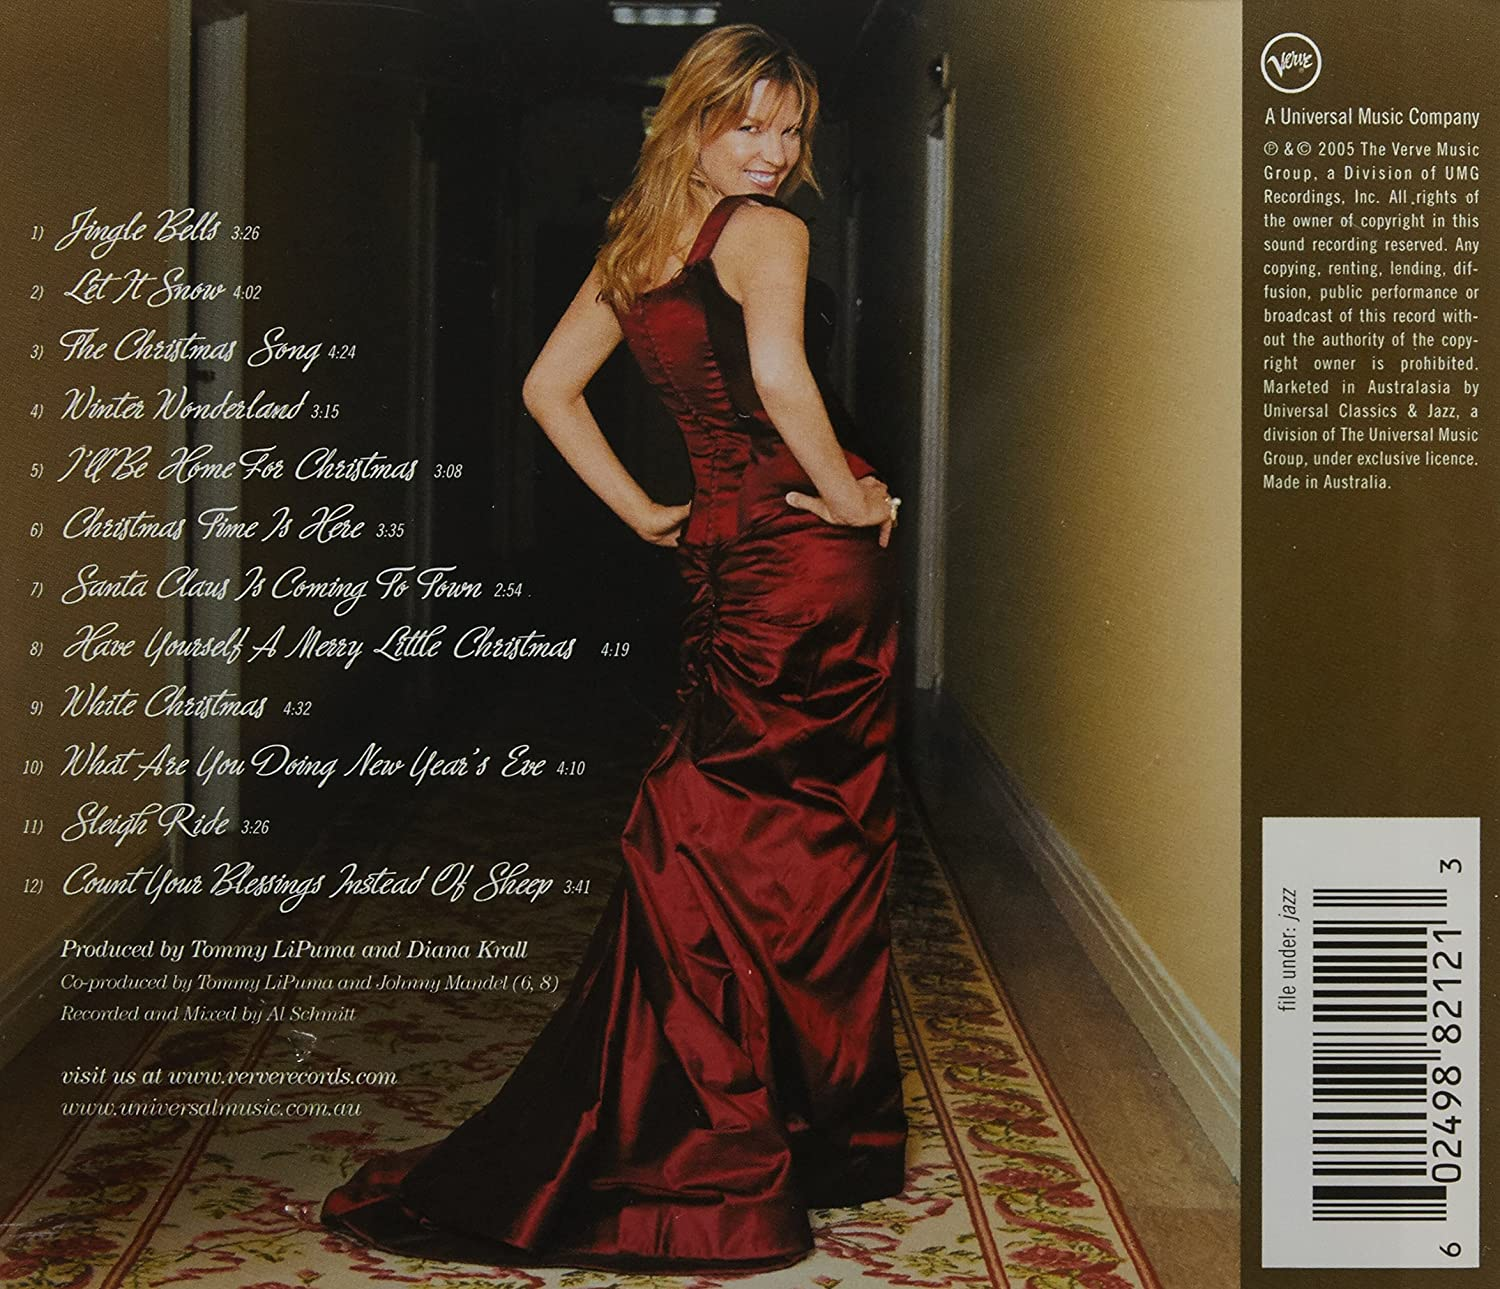 Christmas Songs - Diana Krall: Amazon.de: Musik